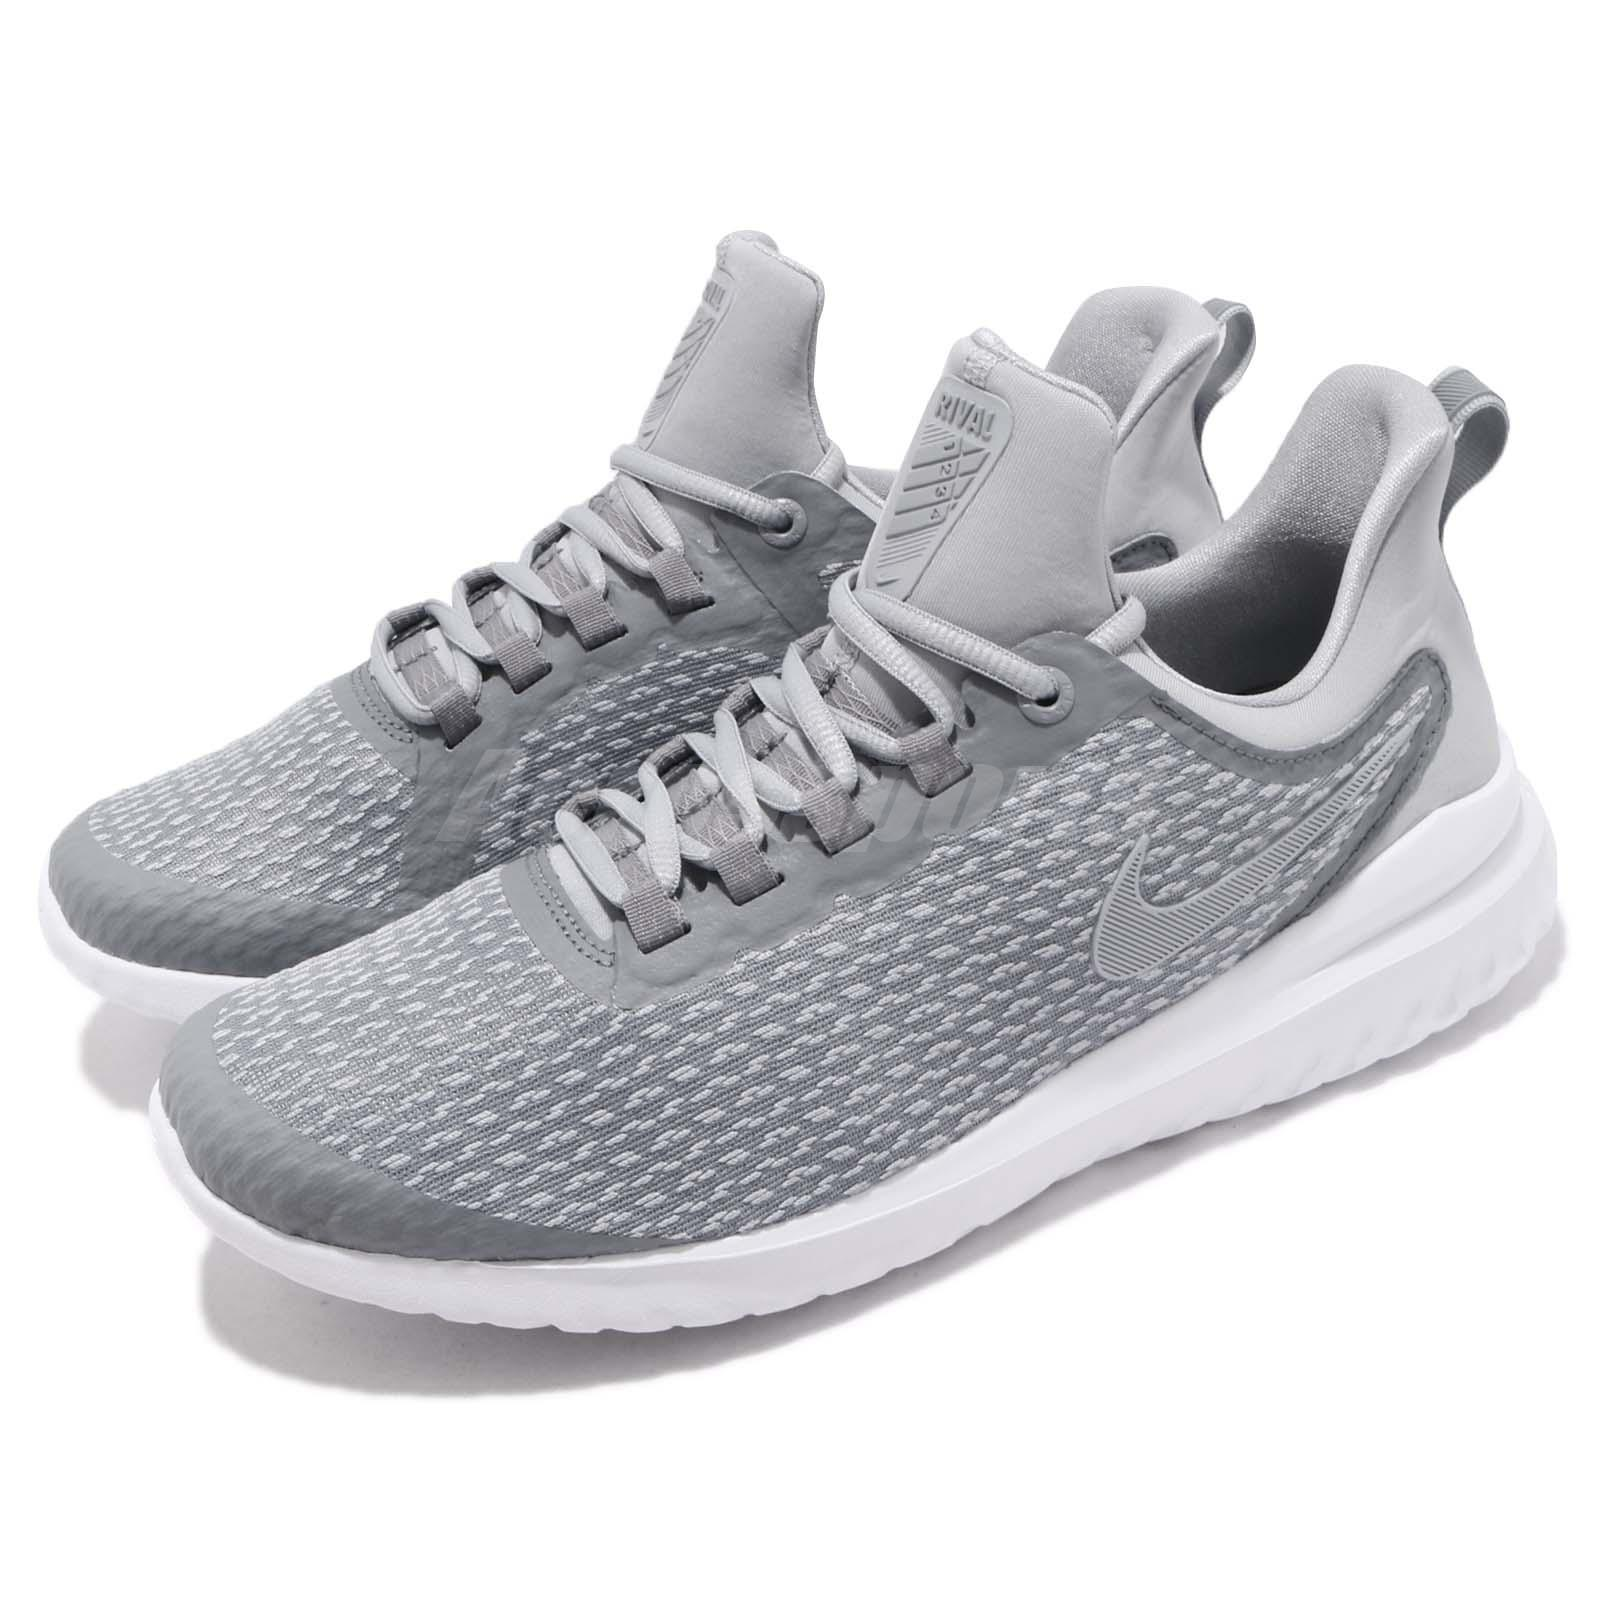 official photos d486b b16c2 Details about Nike Renew Rival Stealth Grey White Men Running Casual Shoes  Sneakers AA7400-006